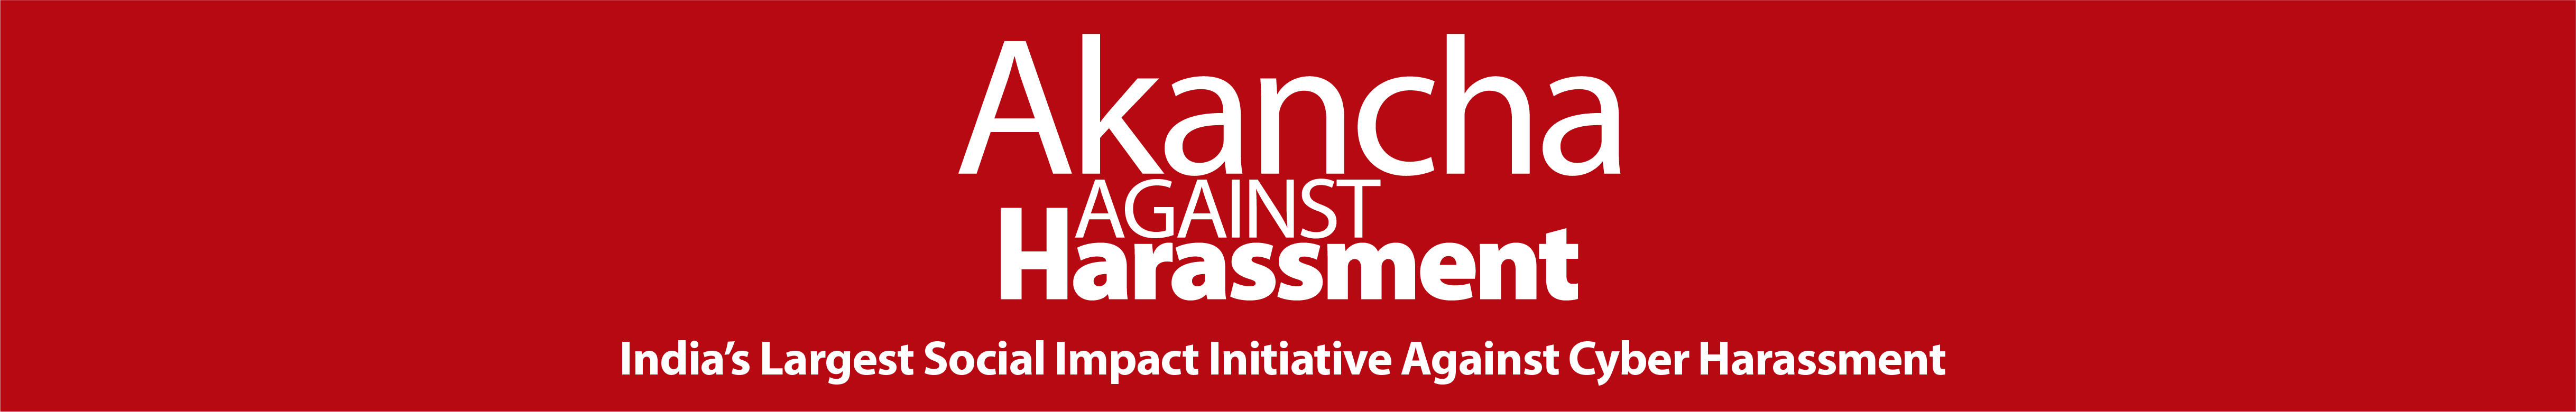 Akancha Against Harassment